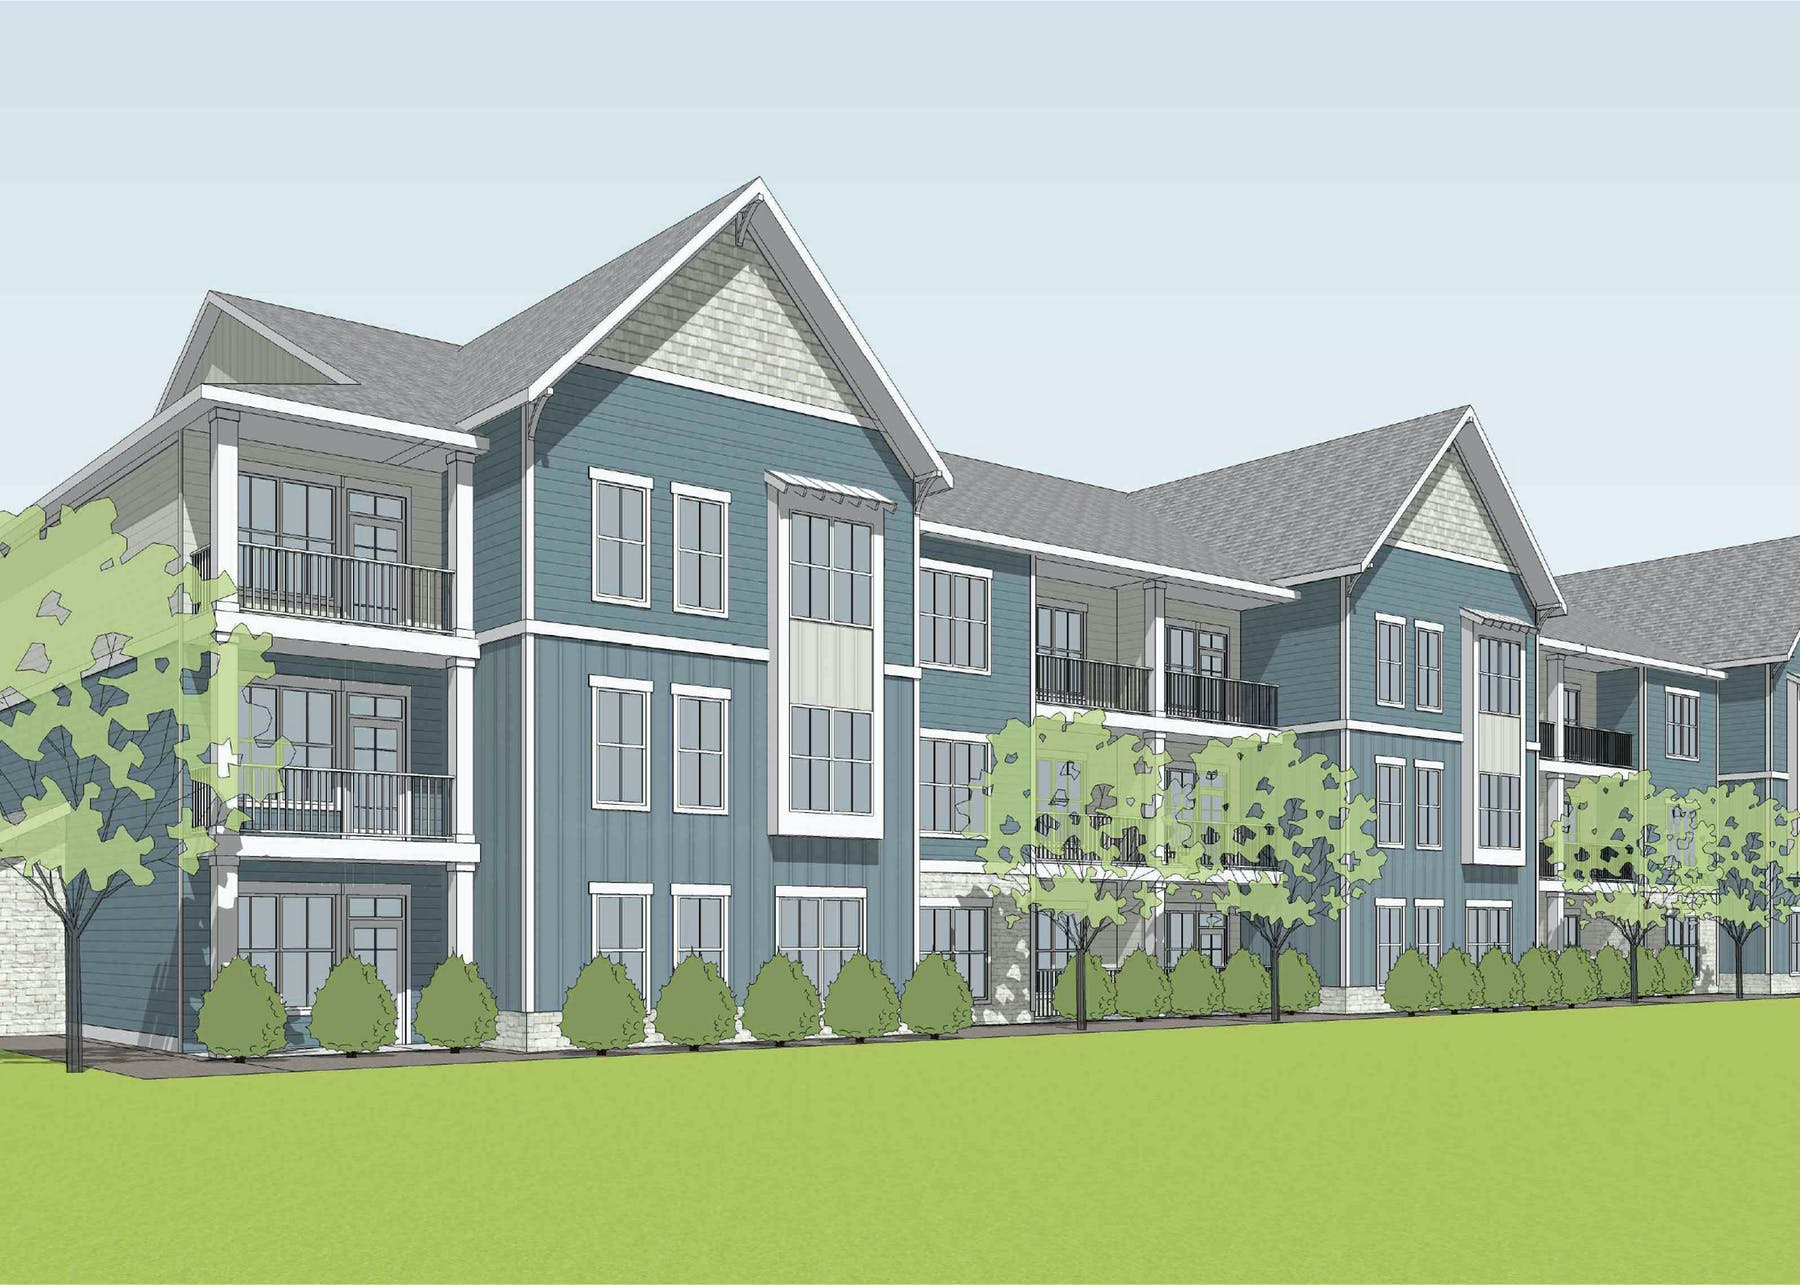 Watermark Residential to Develop 276-Unit Taylor Farms by Watermark Luxury Multifamily Community in Charlotte, North Carolina